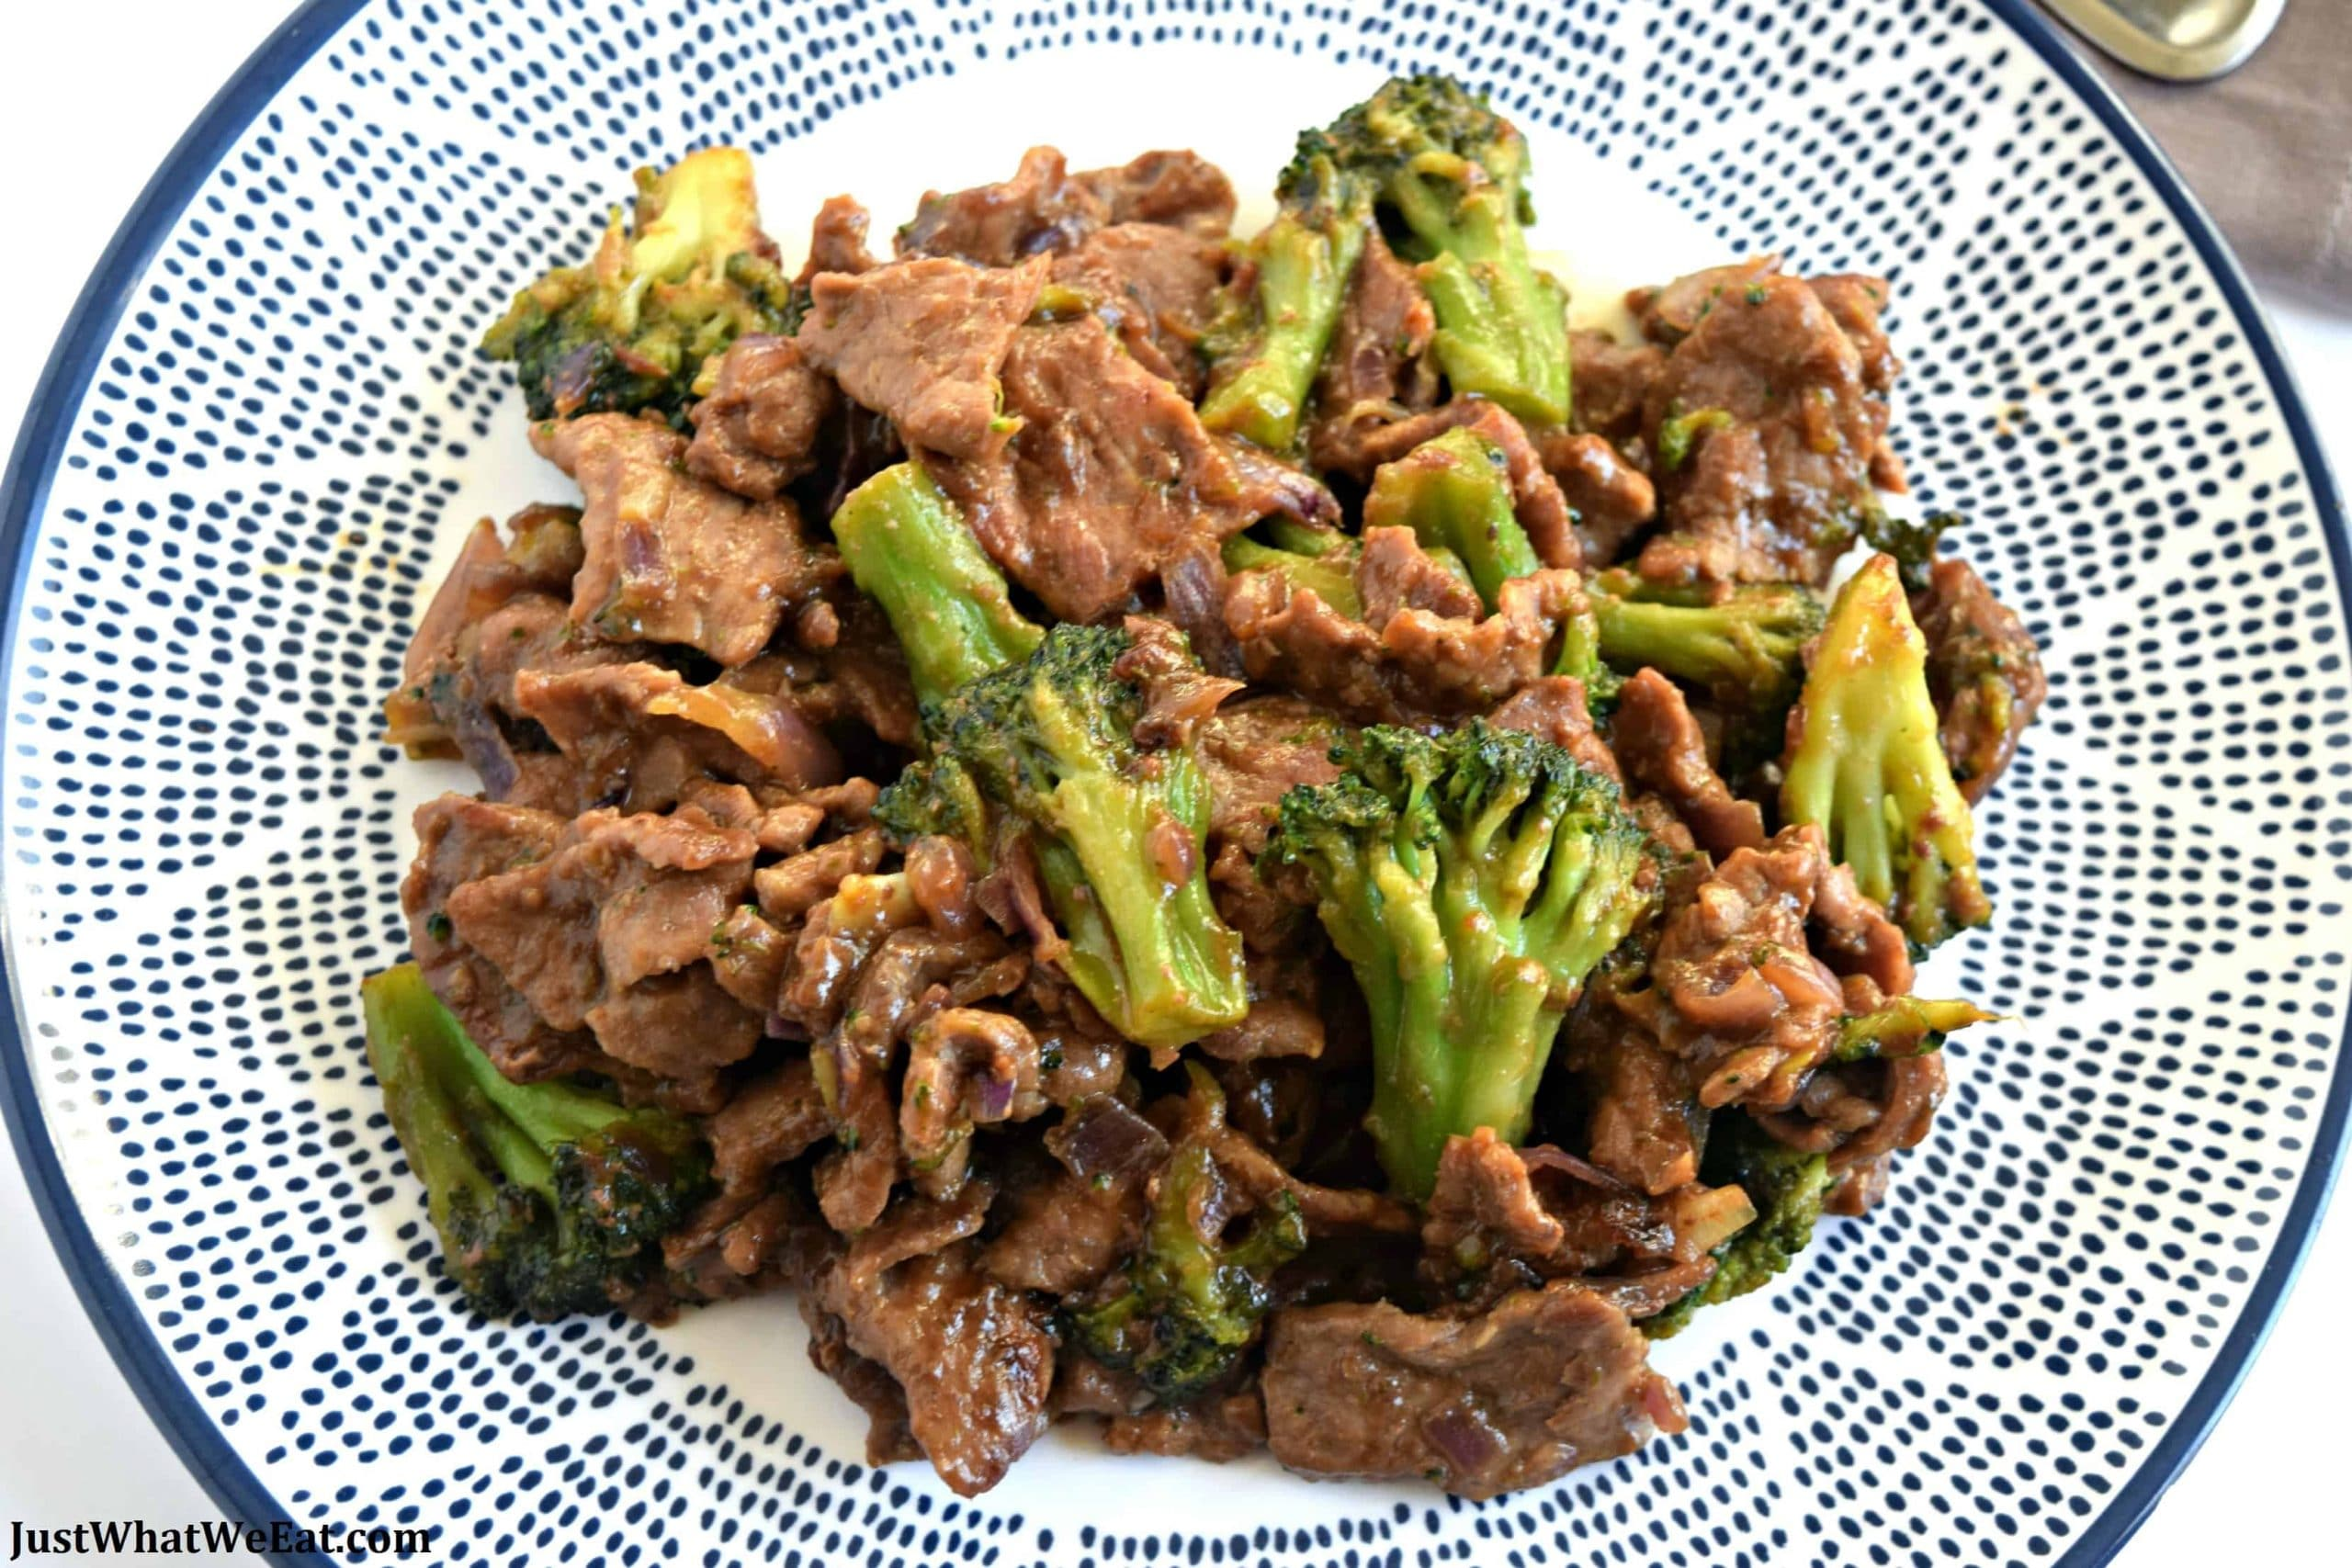 Beef and Broccoli – Gluten Free, Dairy Free, & Soy Free